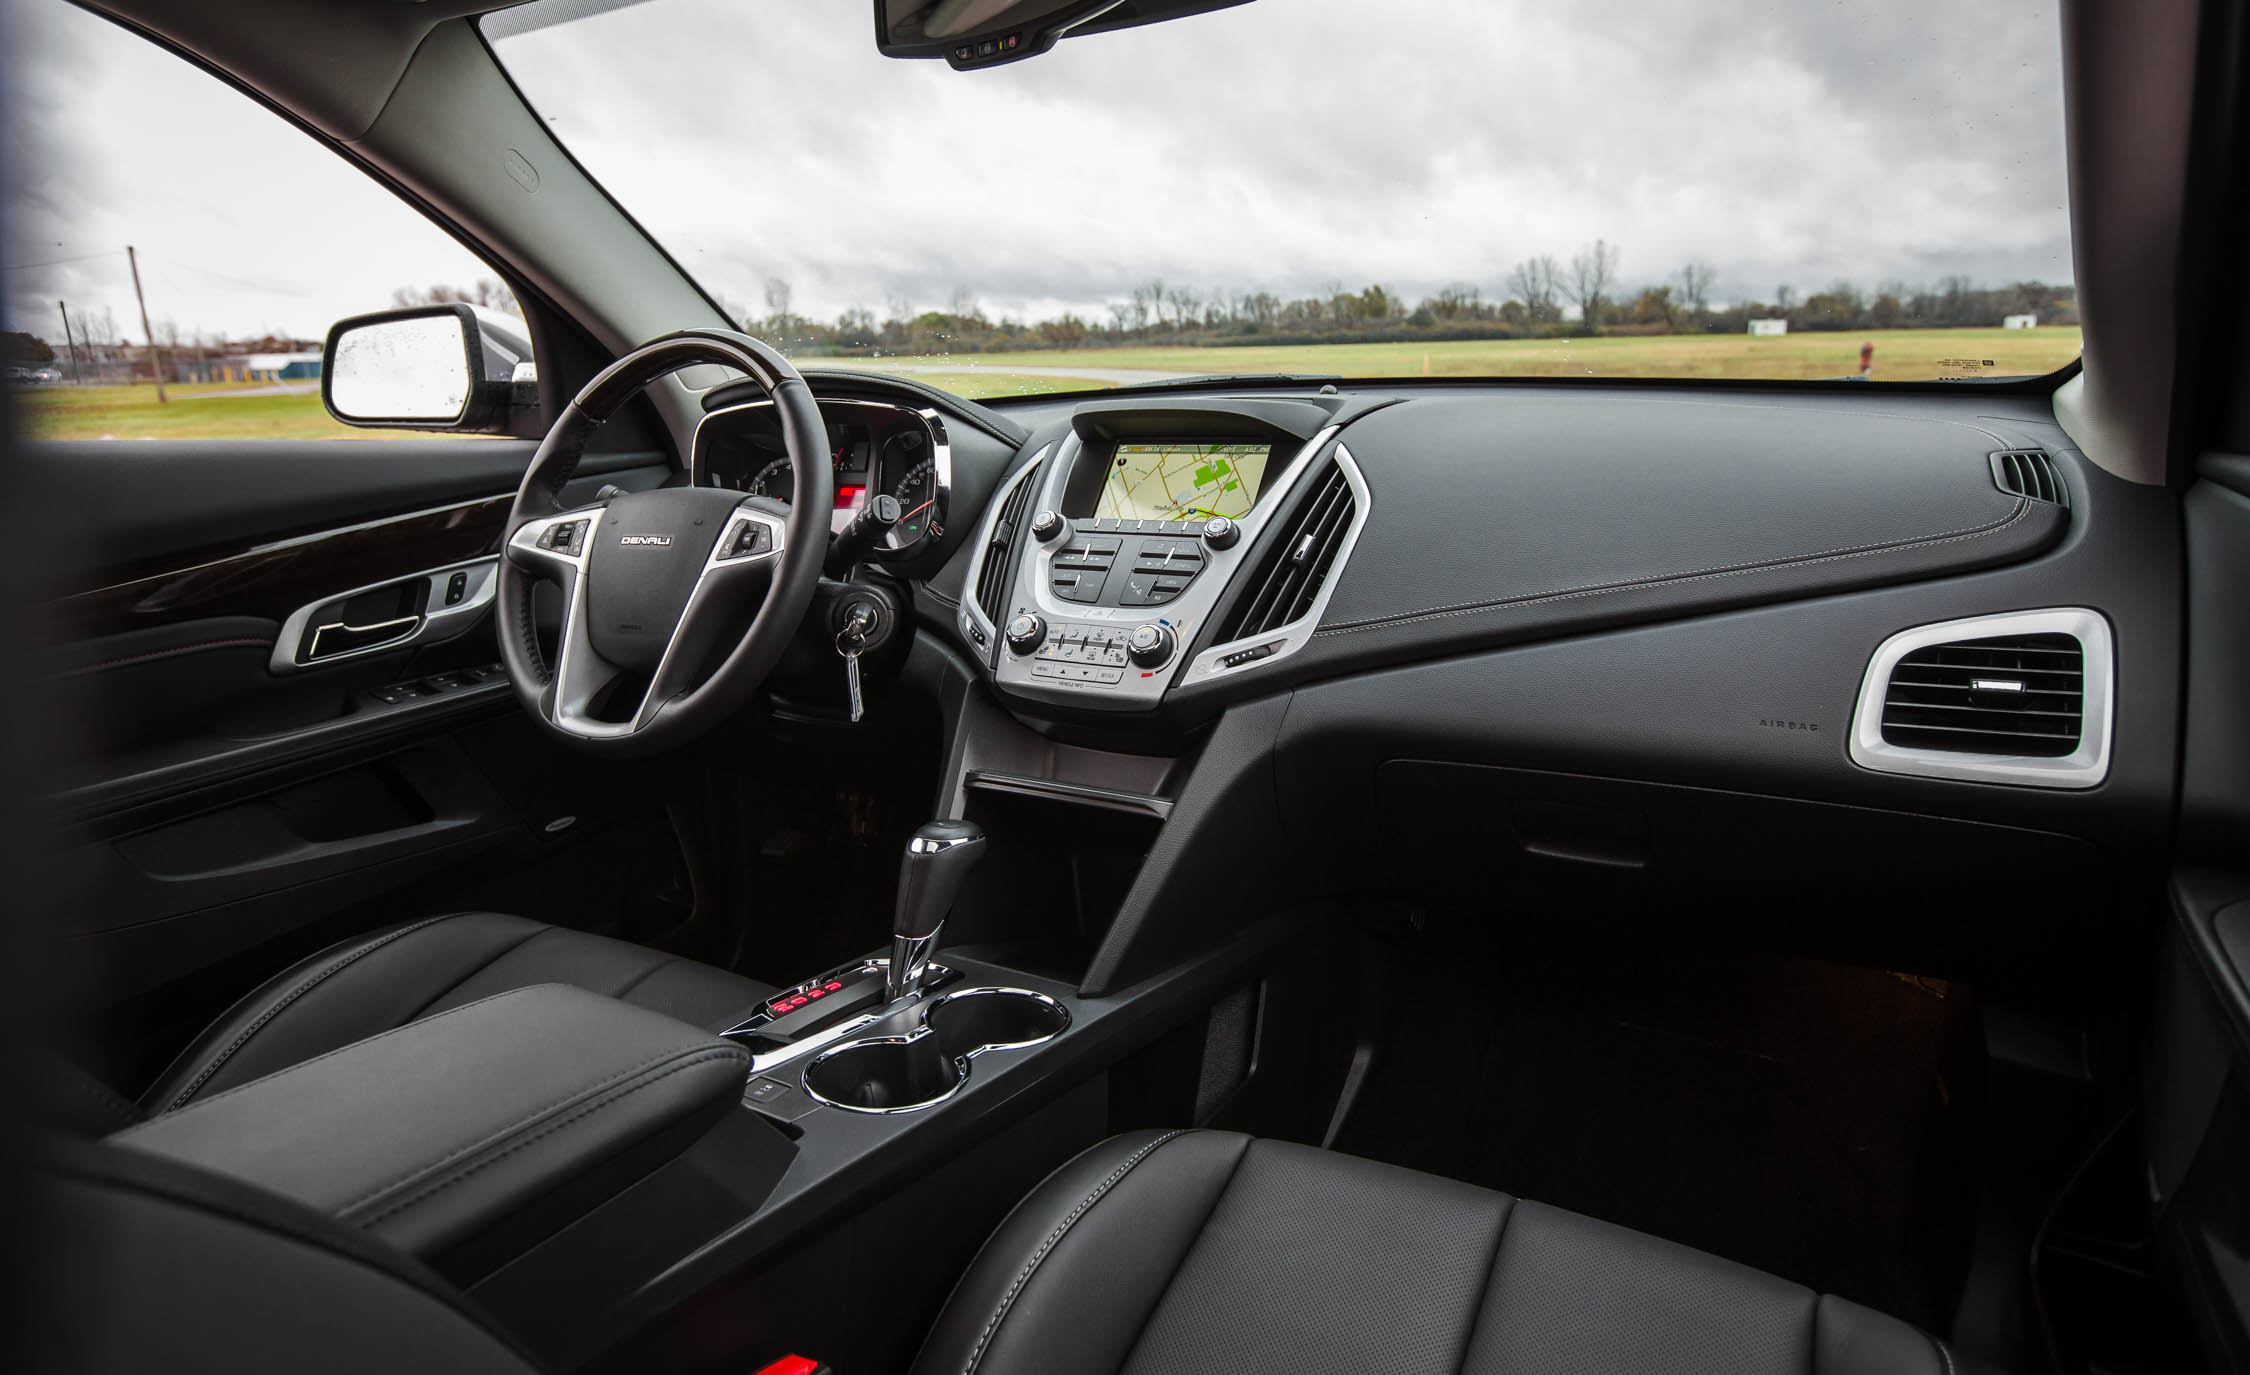 2016 GMC Terrain Denali Interior (Photo 24 of 24)